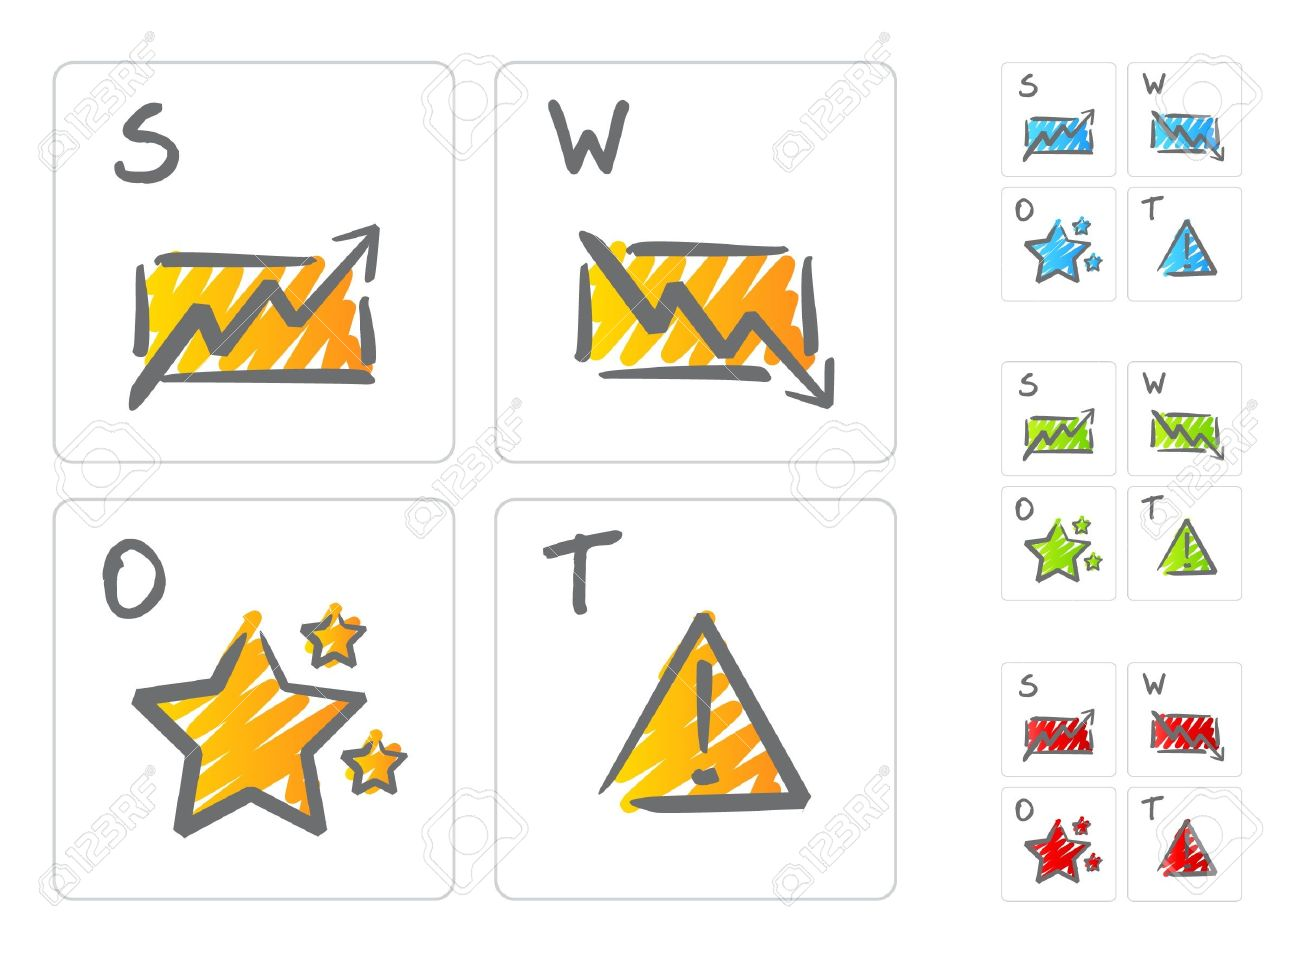 swot analysis icons royalty cliparts vectors and stock swot analysis icons stock vector 10494634